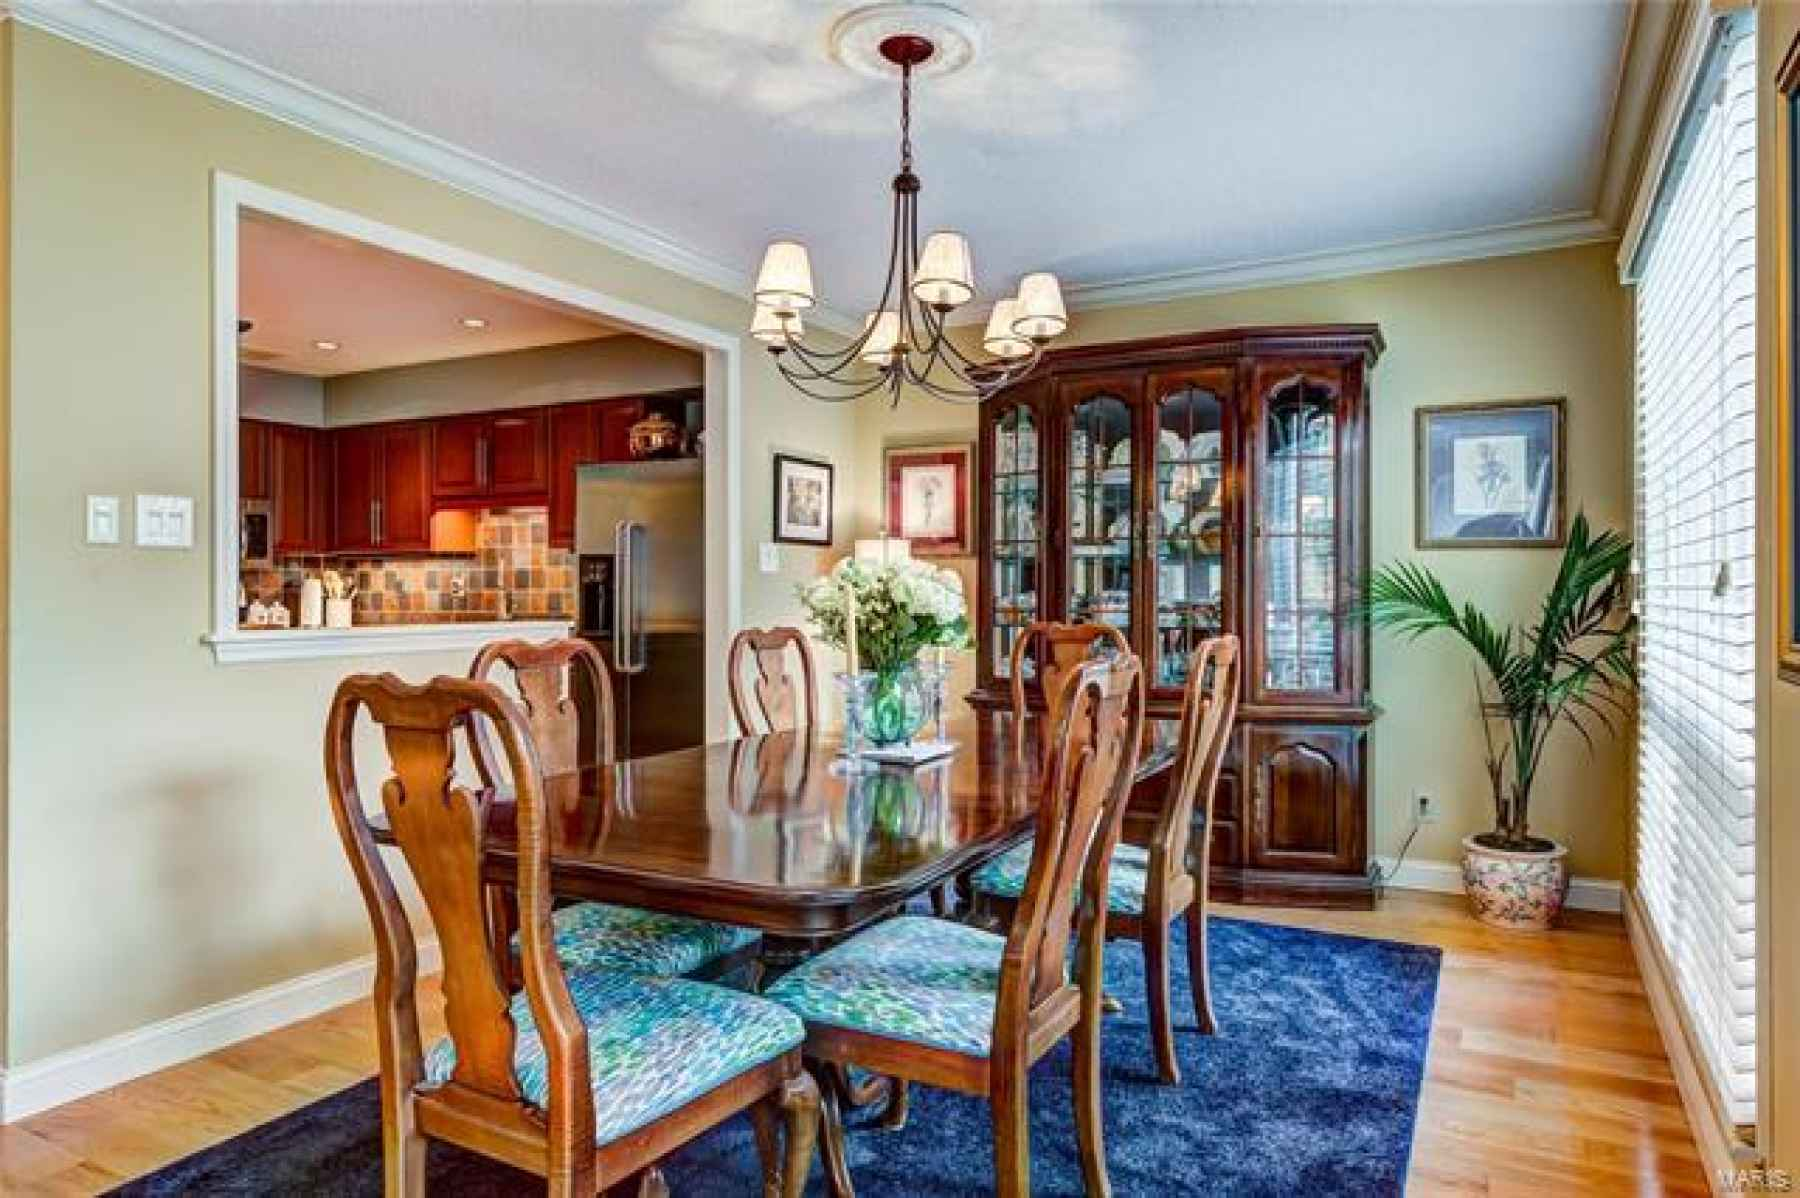 Current owner opened the wall between the dining room and kitchen creating the open space everyone desires